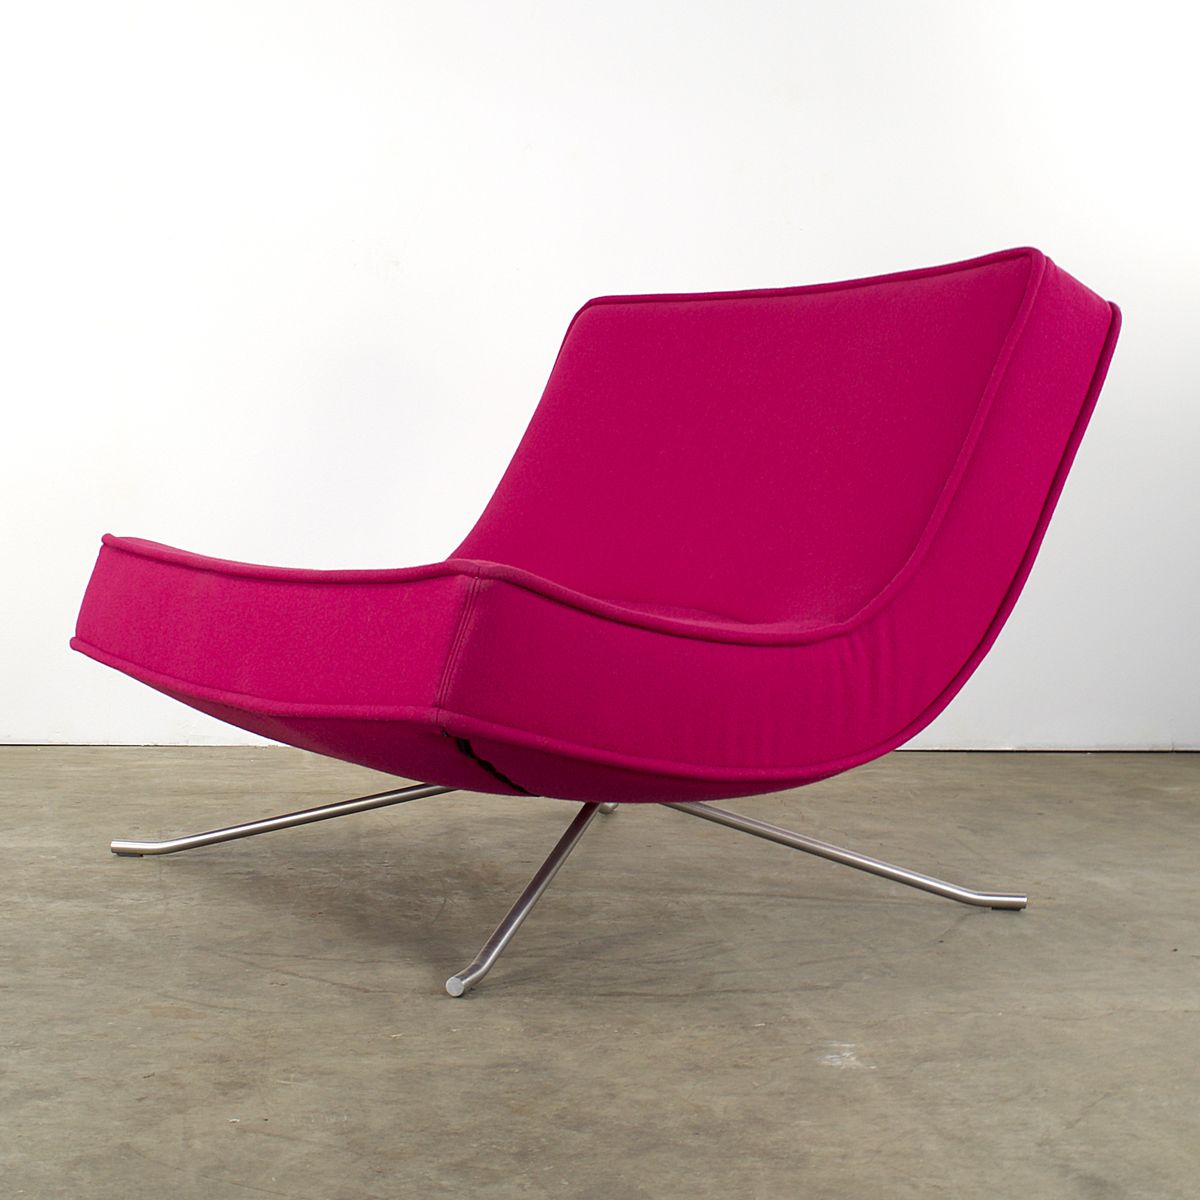 French Pop Easy Lounge Chair and Ottoman by Christian Werner for Ligne Roset